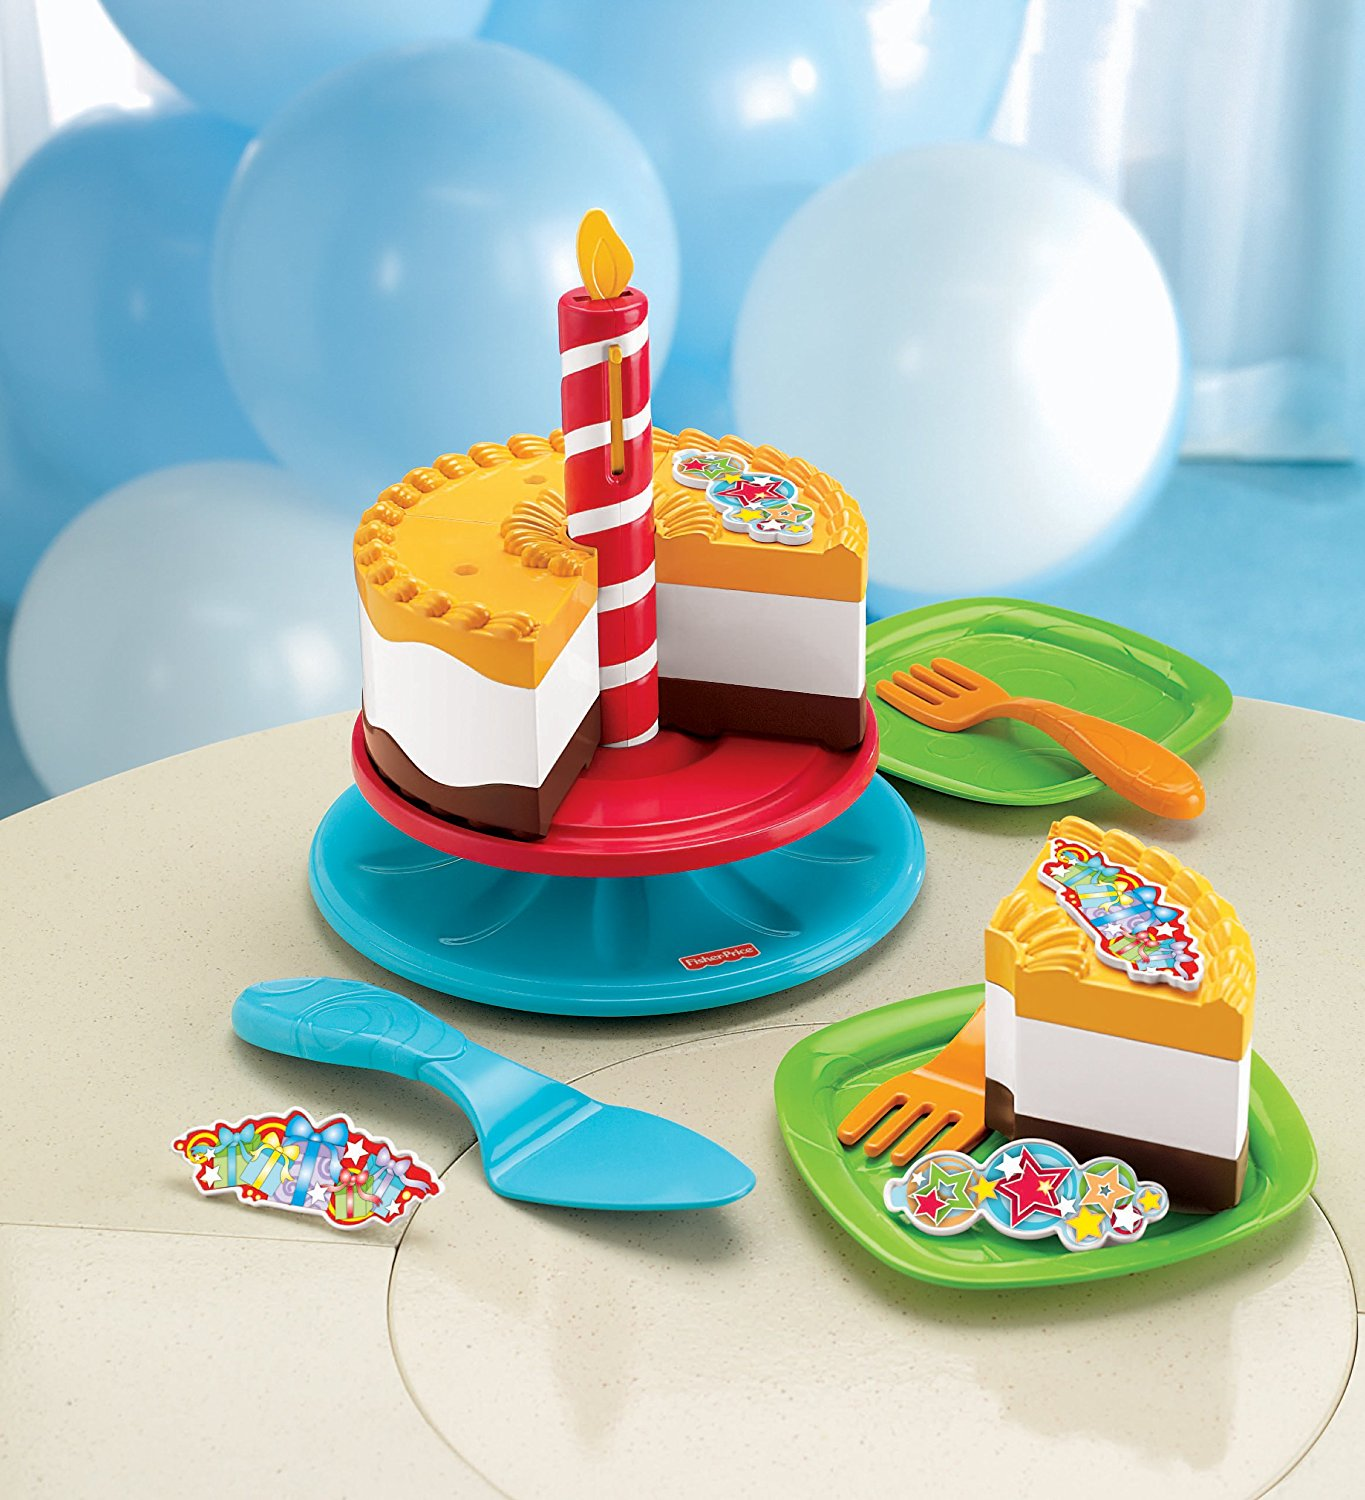 Fisher Price Servin Surprises Birthday Set